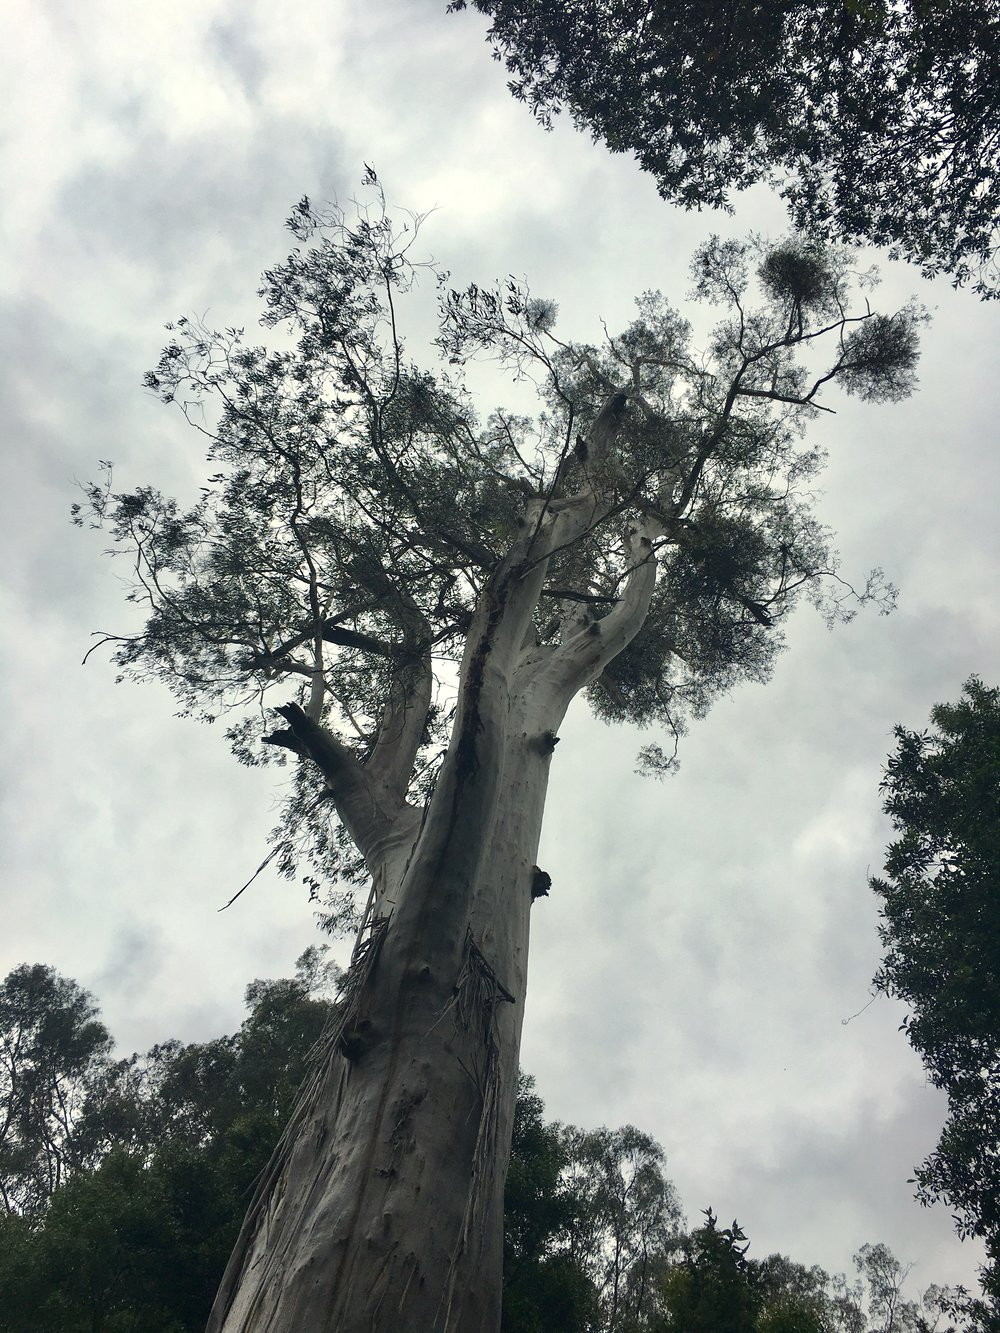 Rainforest eucalyptus tree